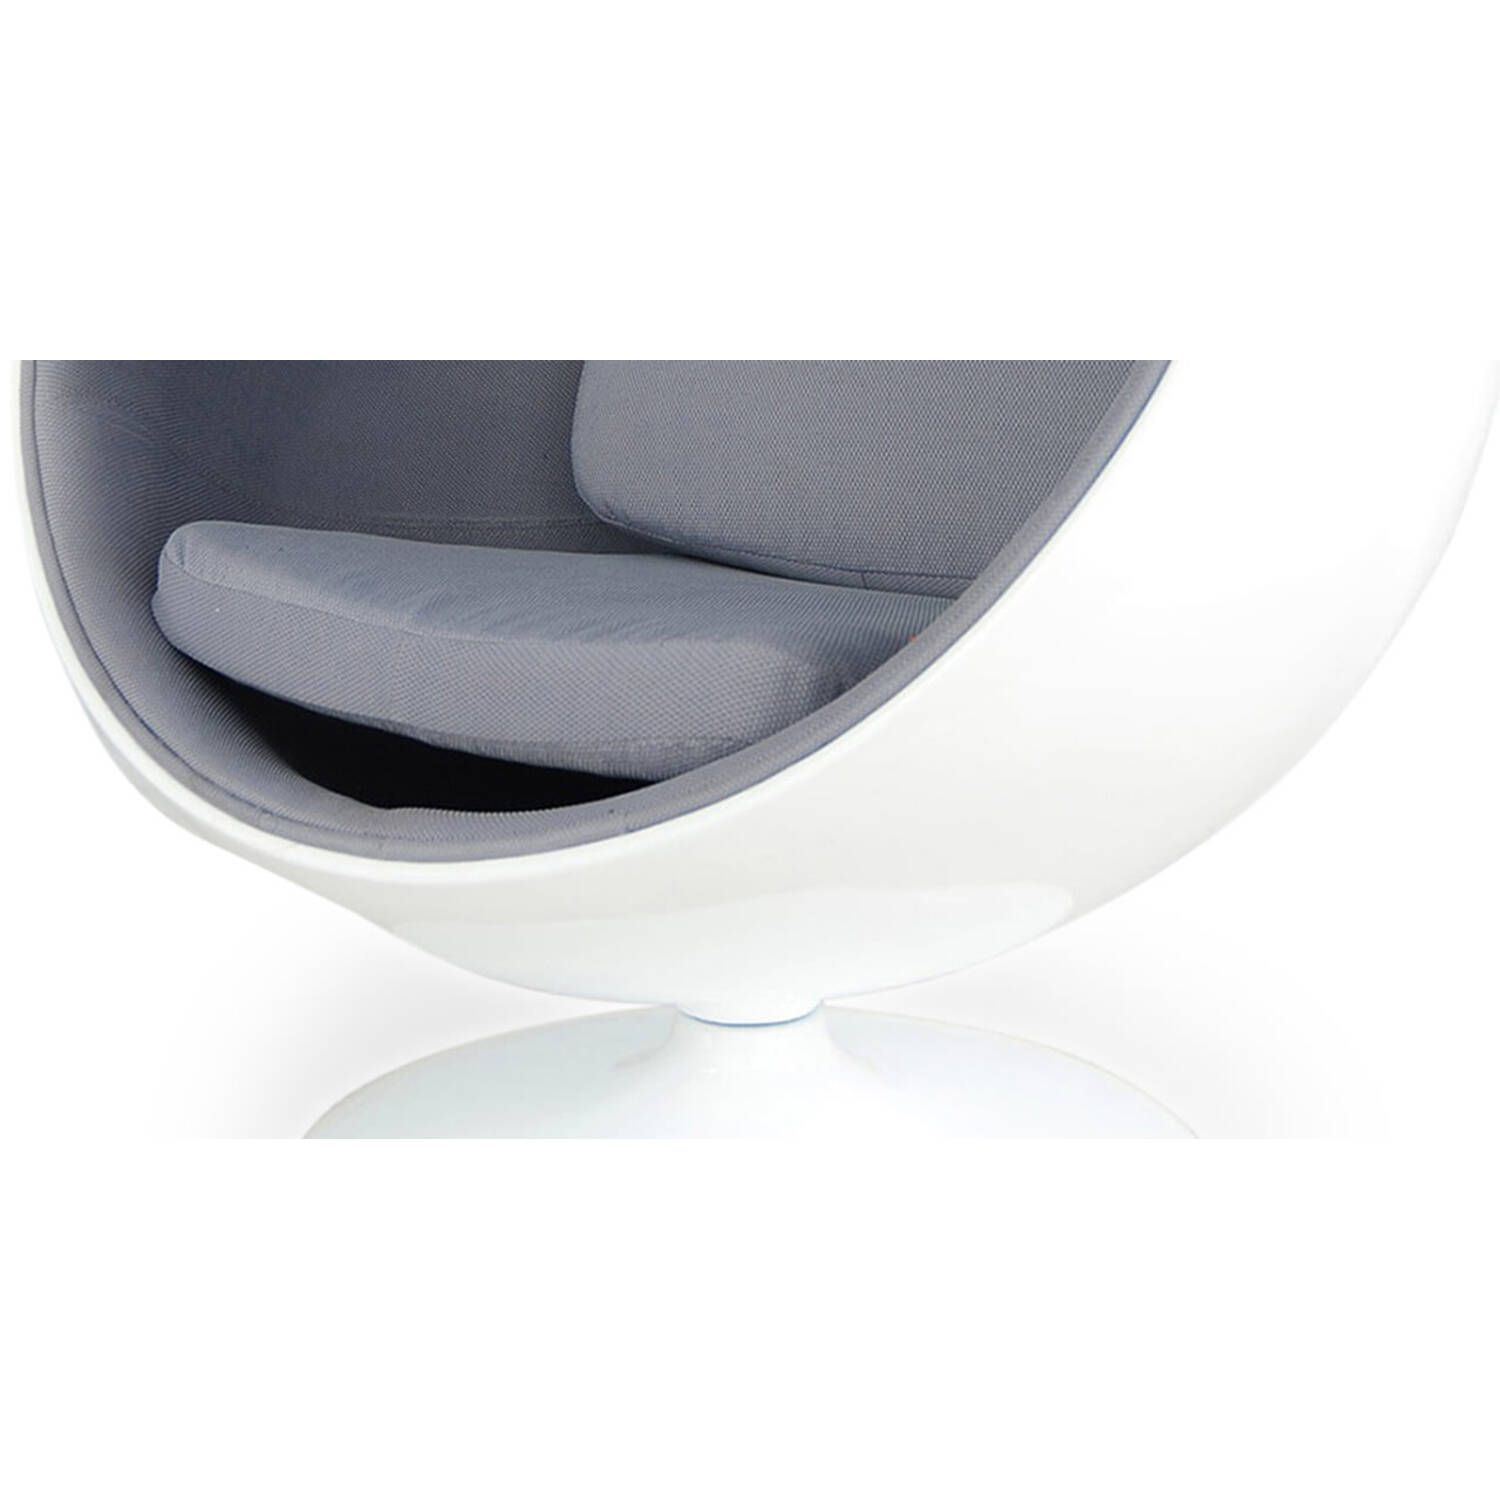 Кресло Шар Ball Chair бело-серое